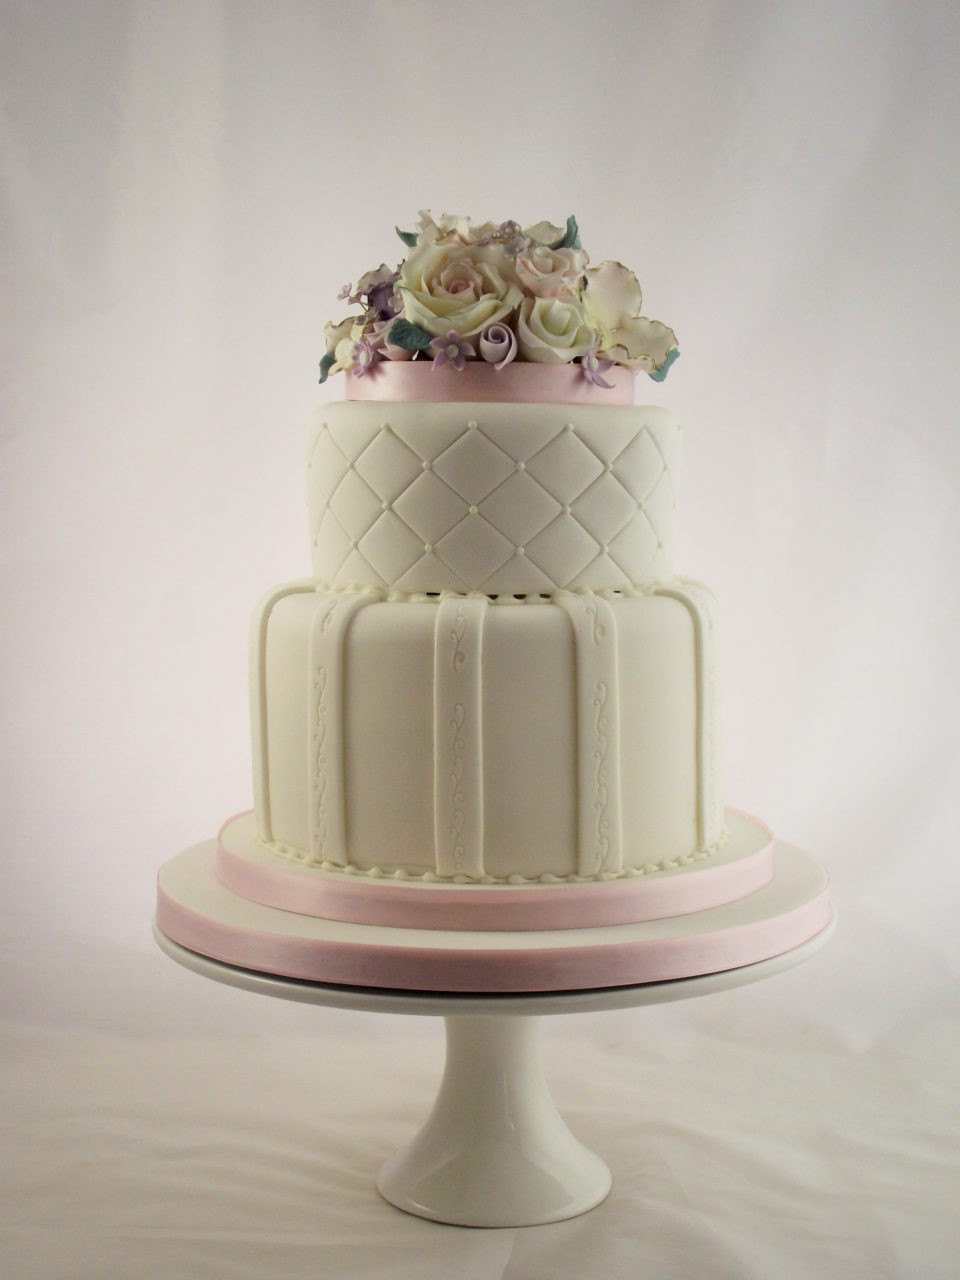 Wedding Cakes Pictures 2016  24 Fab Wedding Cakes for 2016 Couples